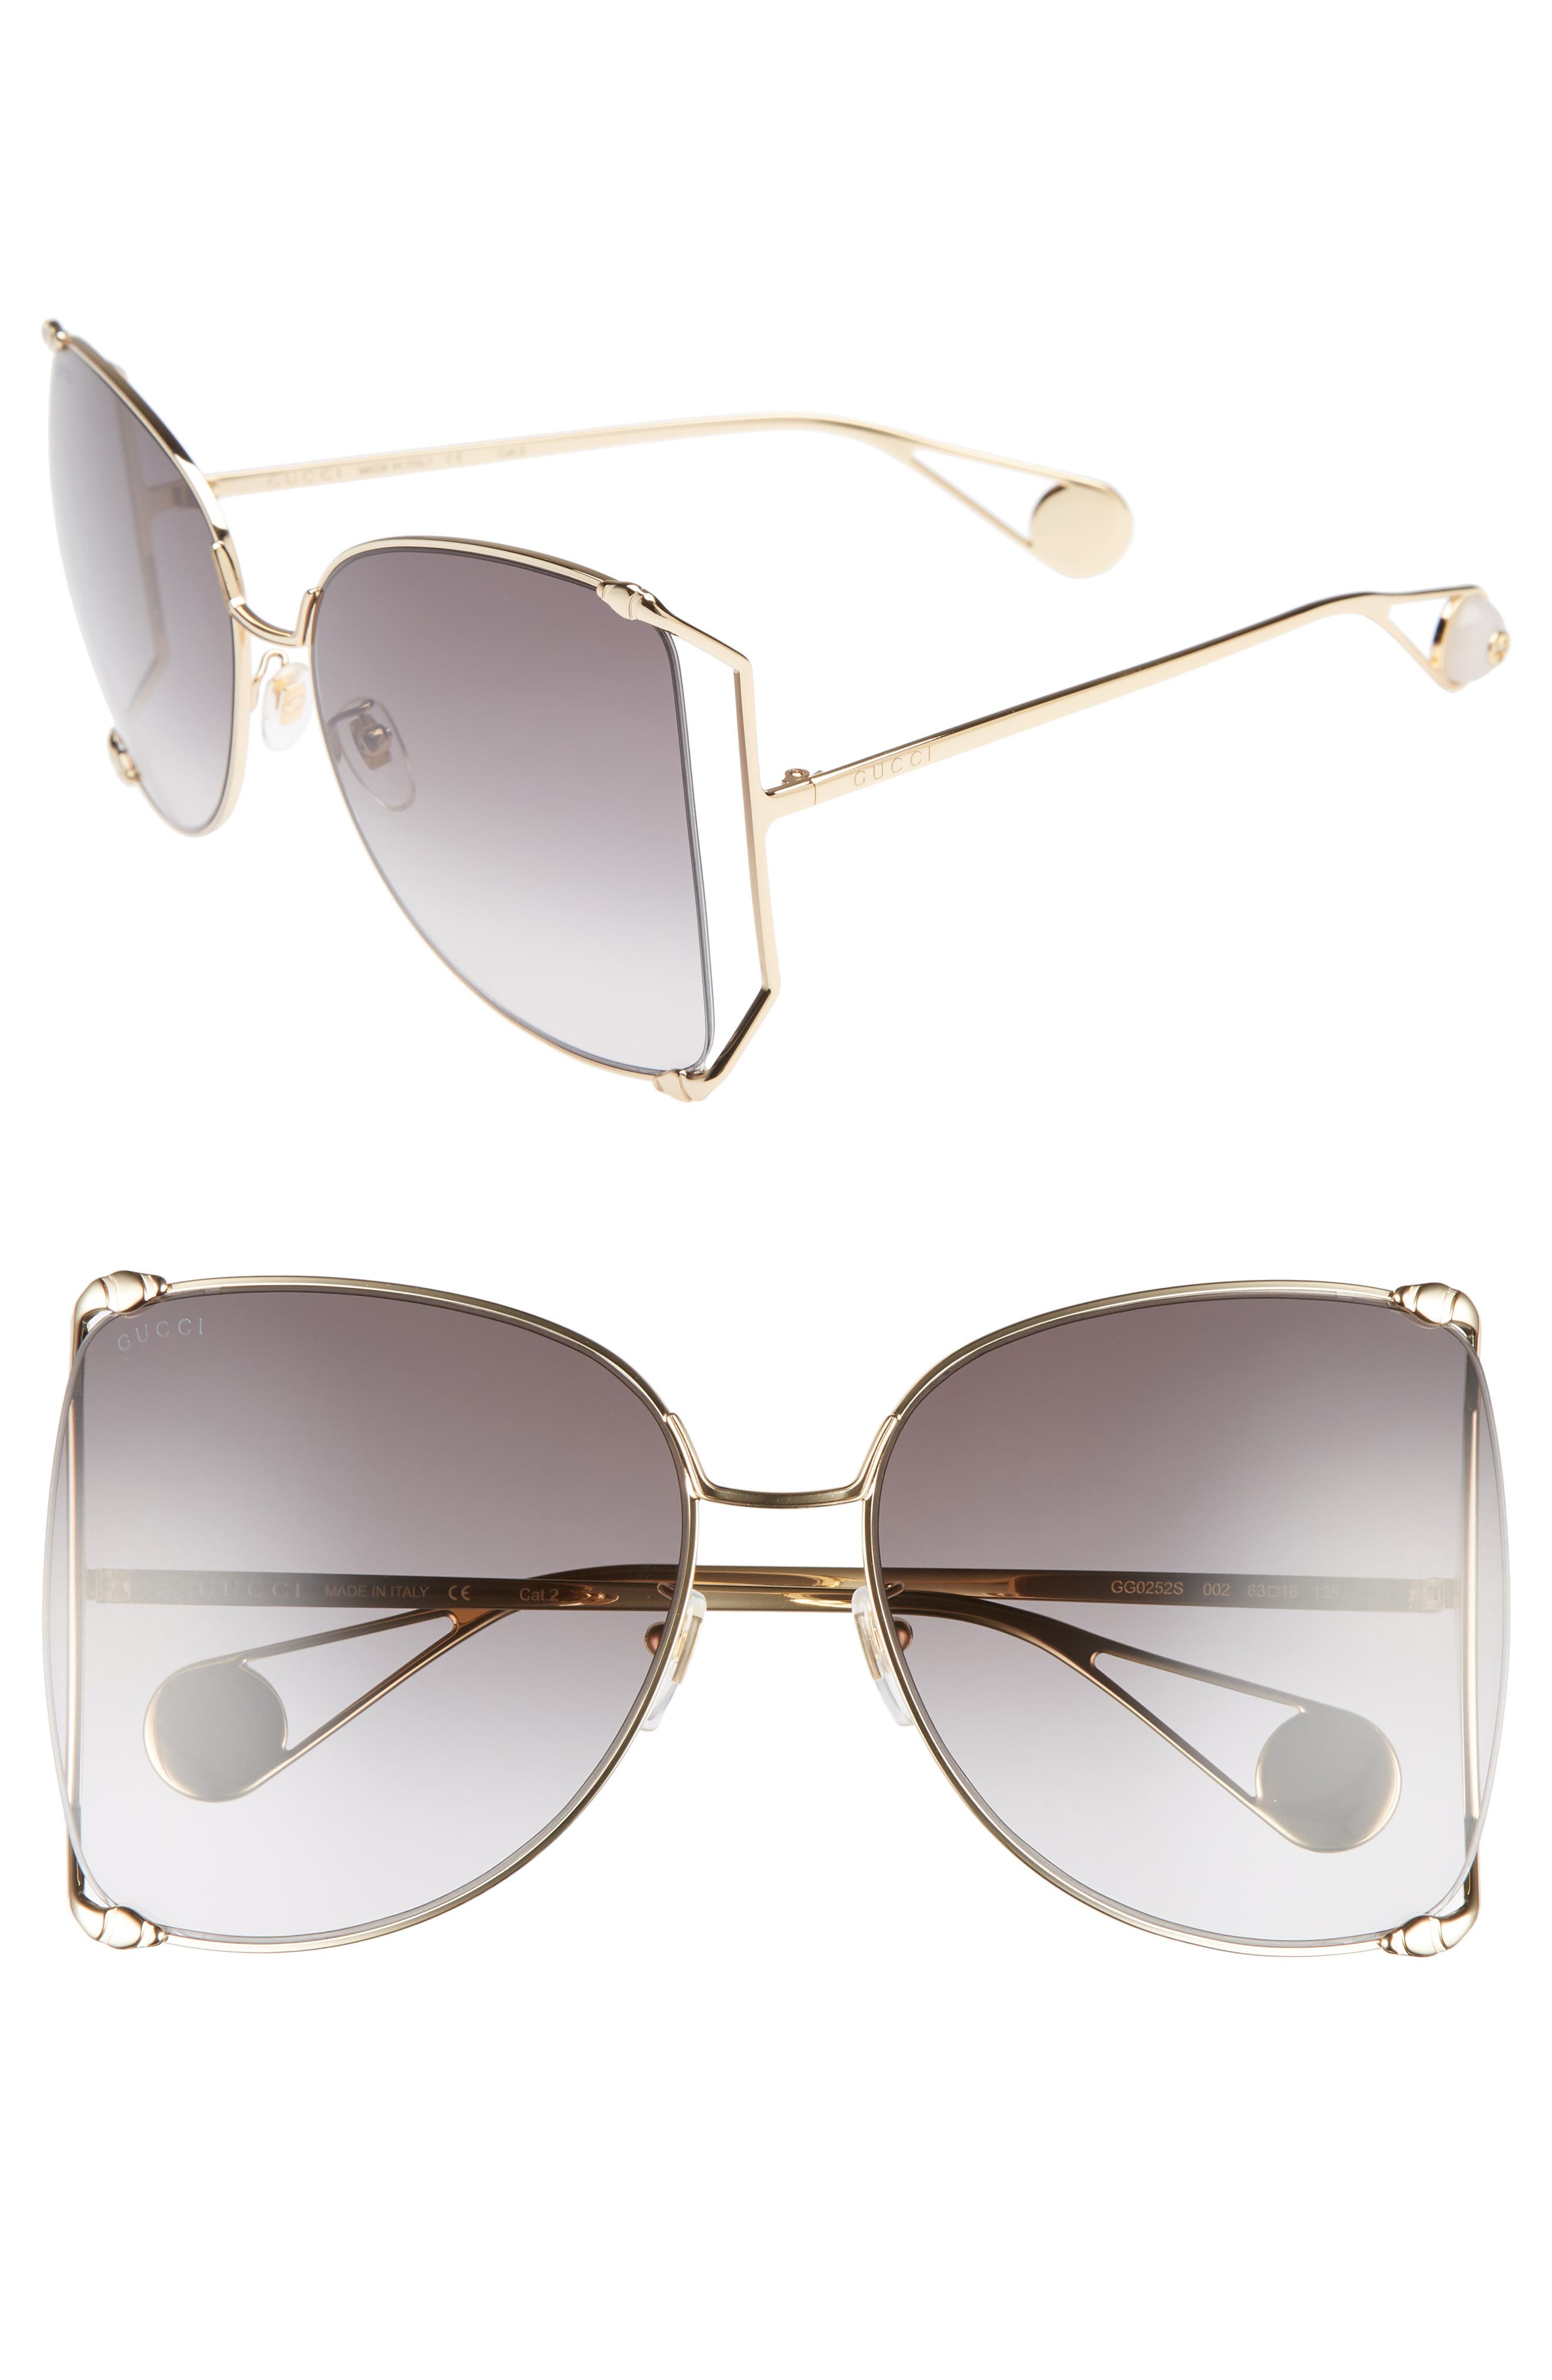 63mm Gradient Oversize Butterfly Sunglasses,                         Main,                         color, Gold/ Gradient Grey